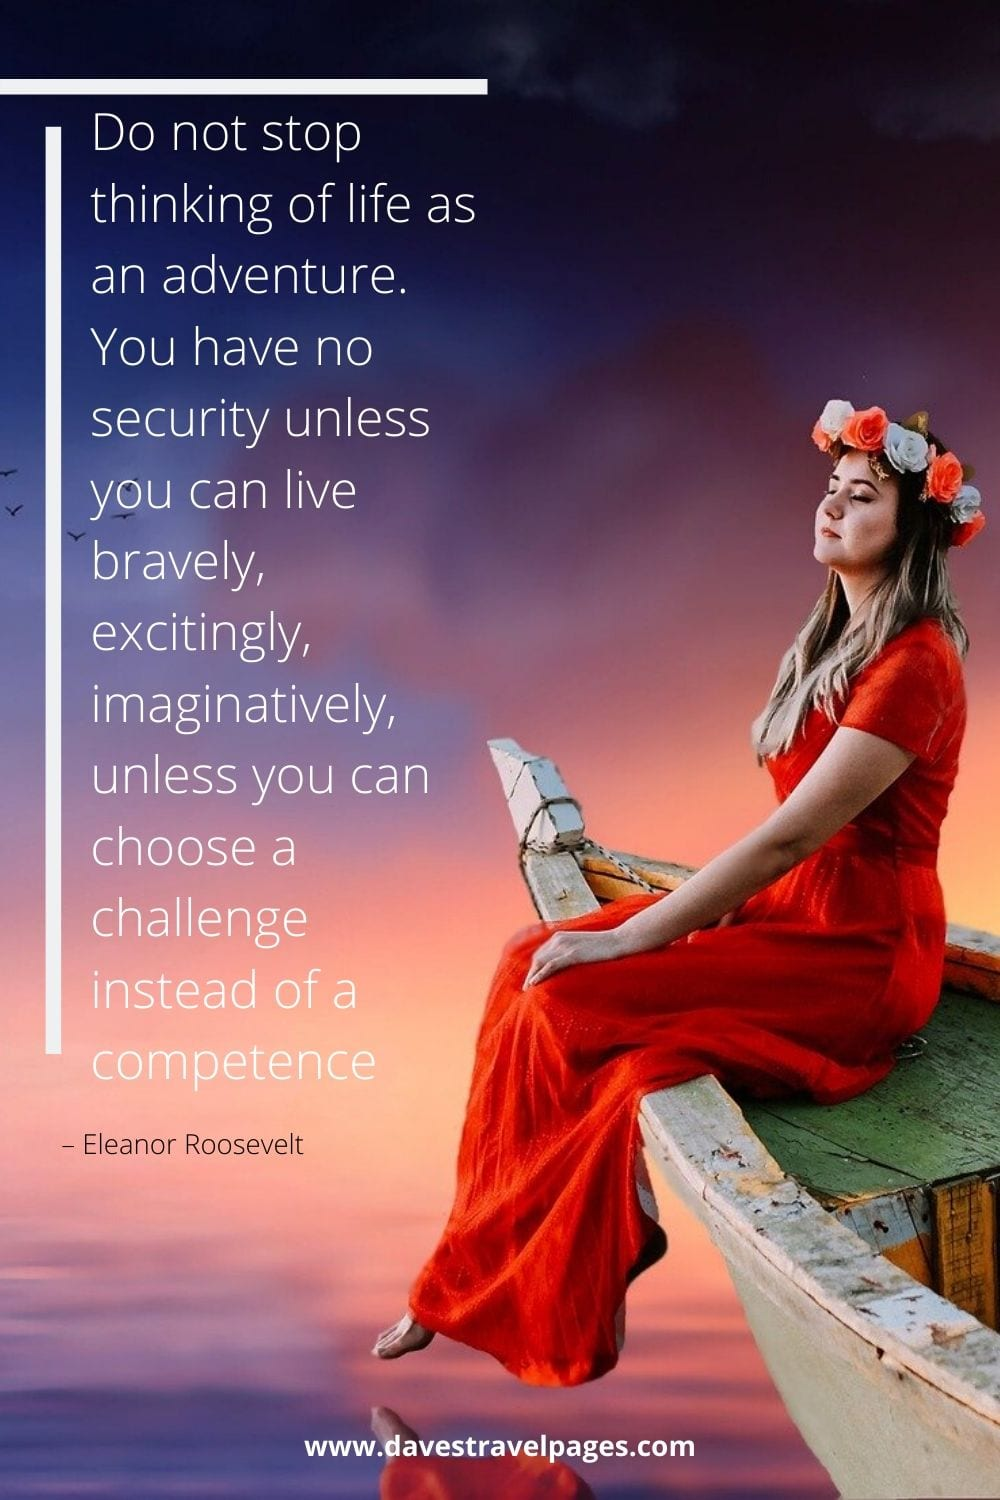 """Do not stop thinking of life as an adventure. You have no security unless you can live bravely, excitingly, imaginatively, unless you can choose a challenge instead of a competence."" – Eleanor Roosevelt Quote"